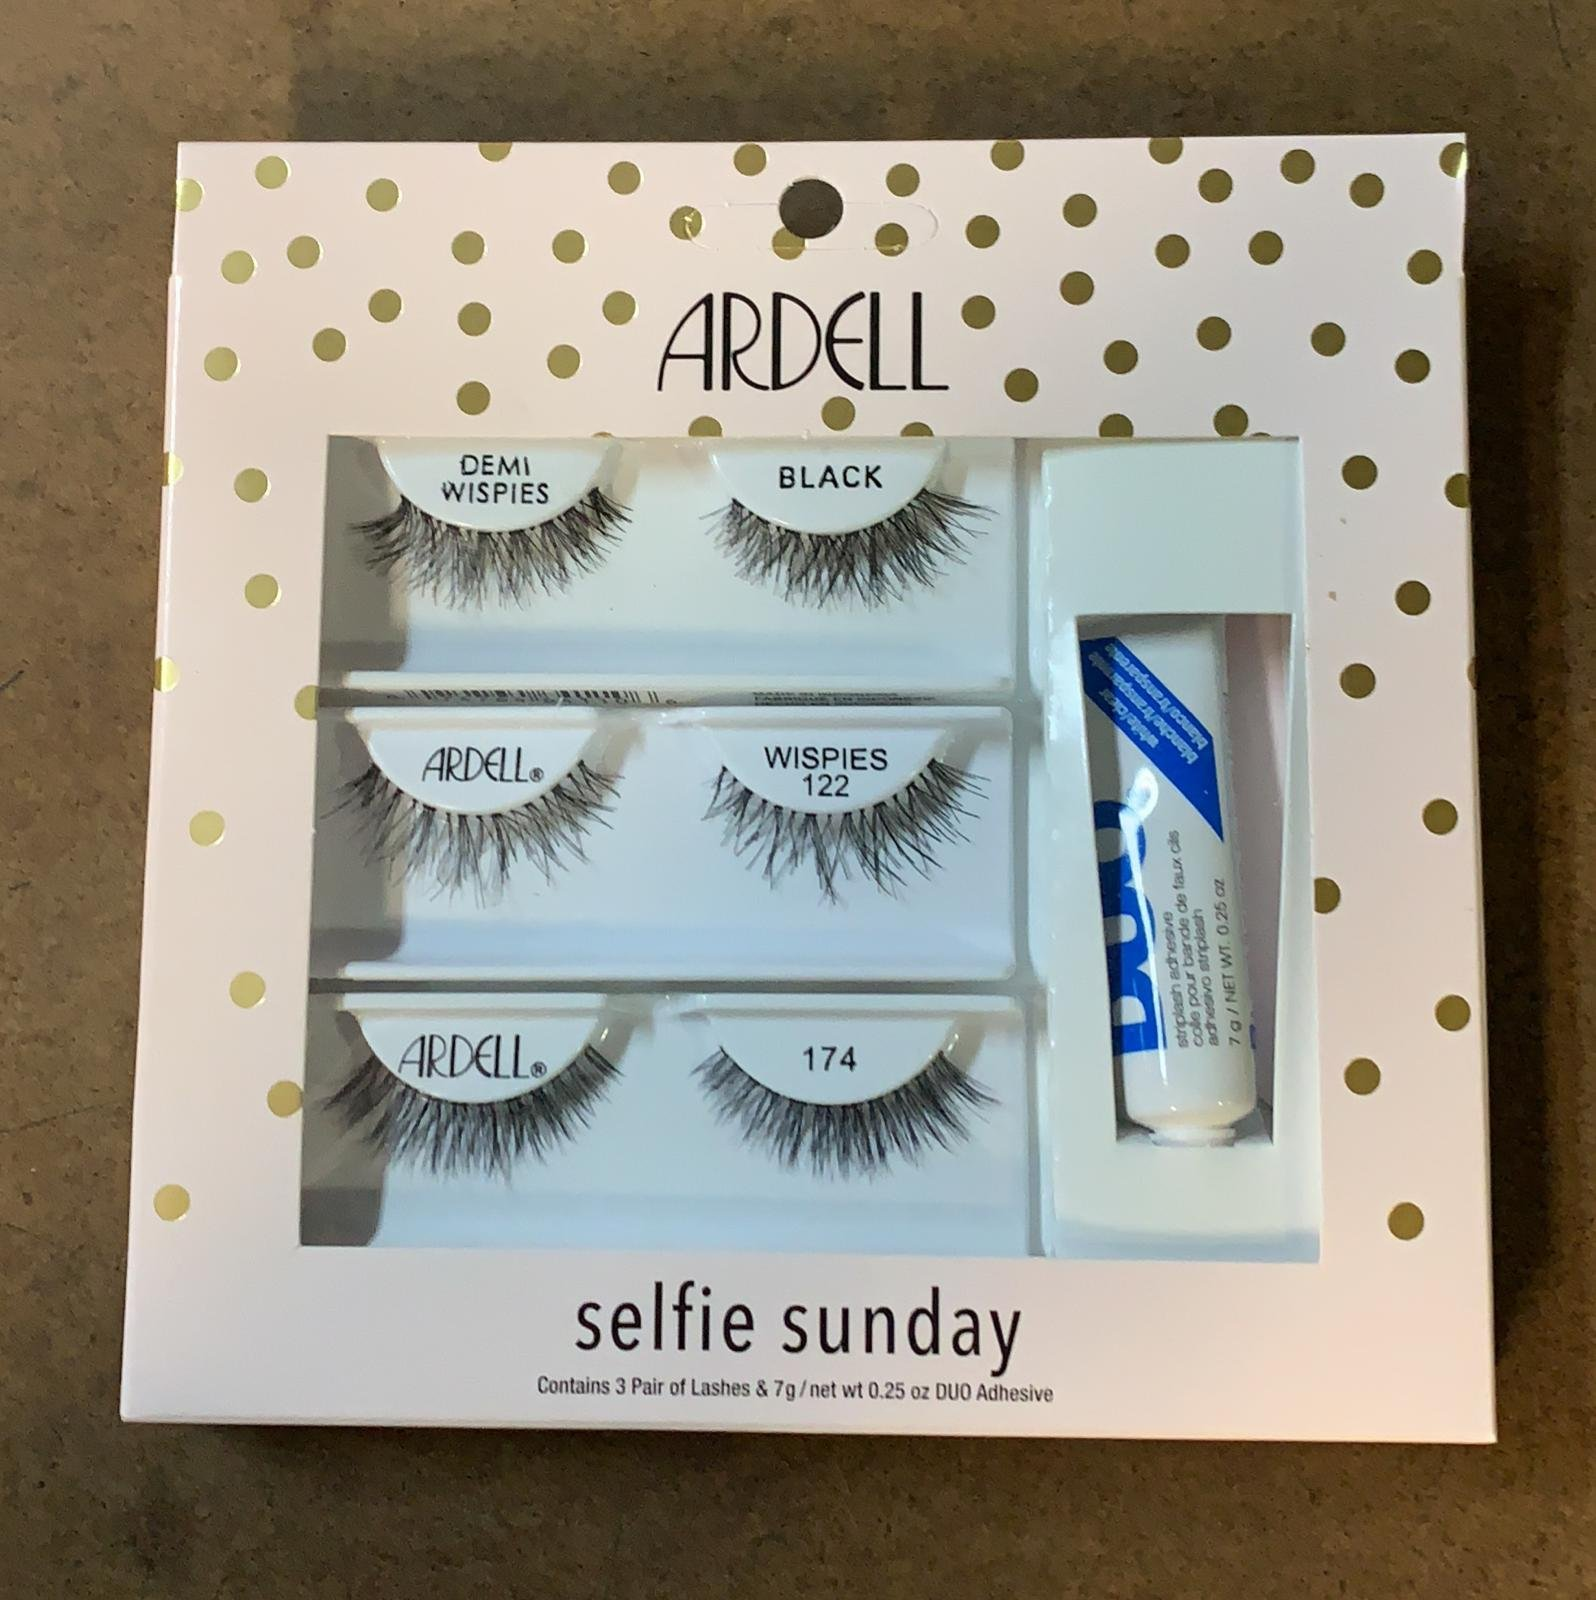 978b9d971ca 6 Pairs Ardell False Eye Lash Kits Selfie Sunday Demi Wispies Lashes 122 174